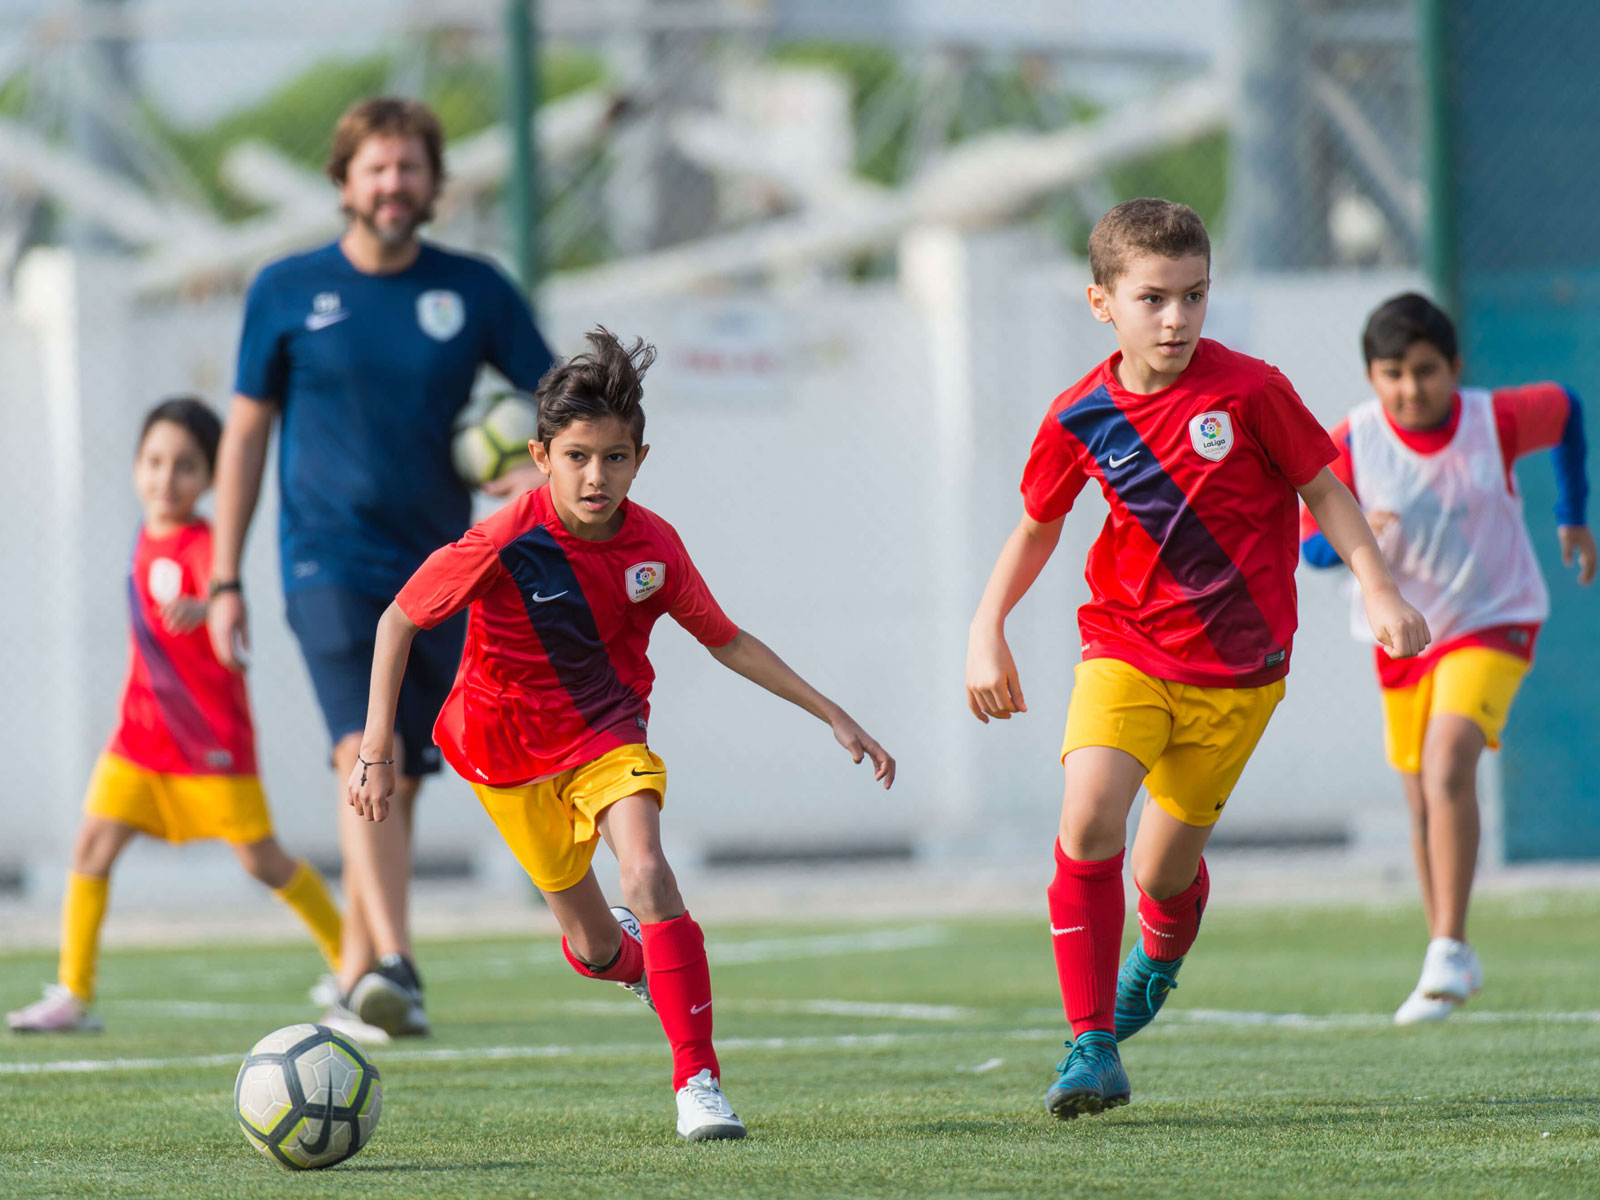 La Liga is opening an academy in Miami